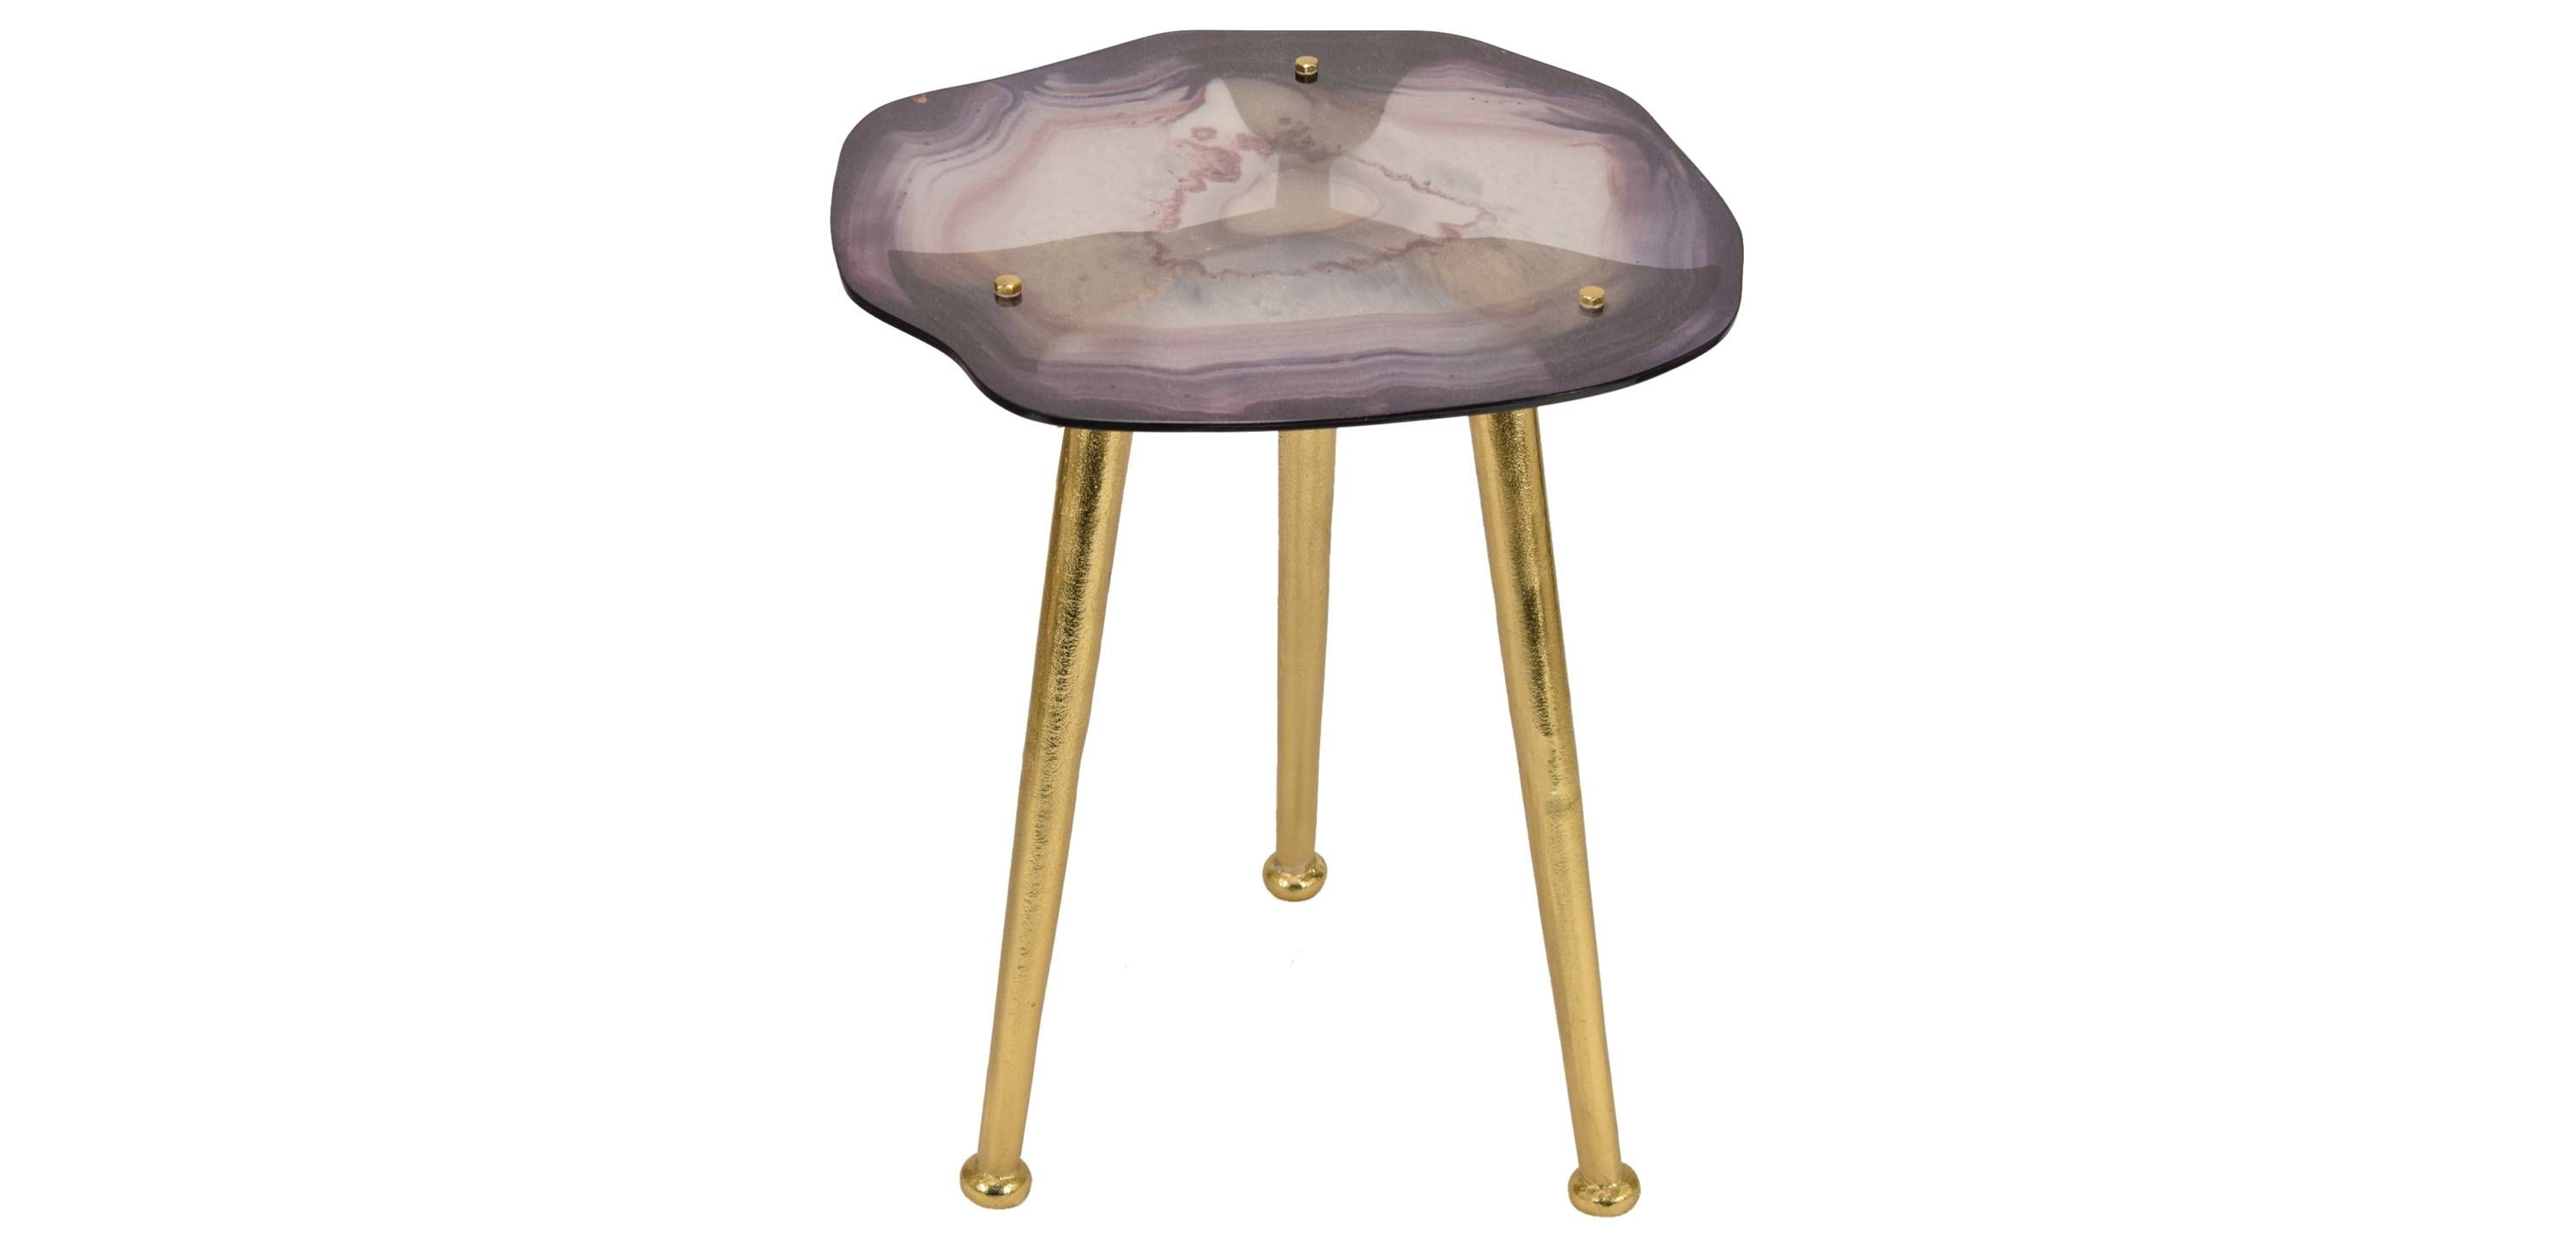 pieces you need from target big home nate berkus round gold accent table with marble top the waving pattern and blur hues contrasts sharp legs glass agate this side has natural